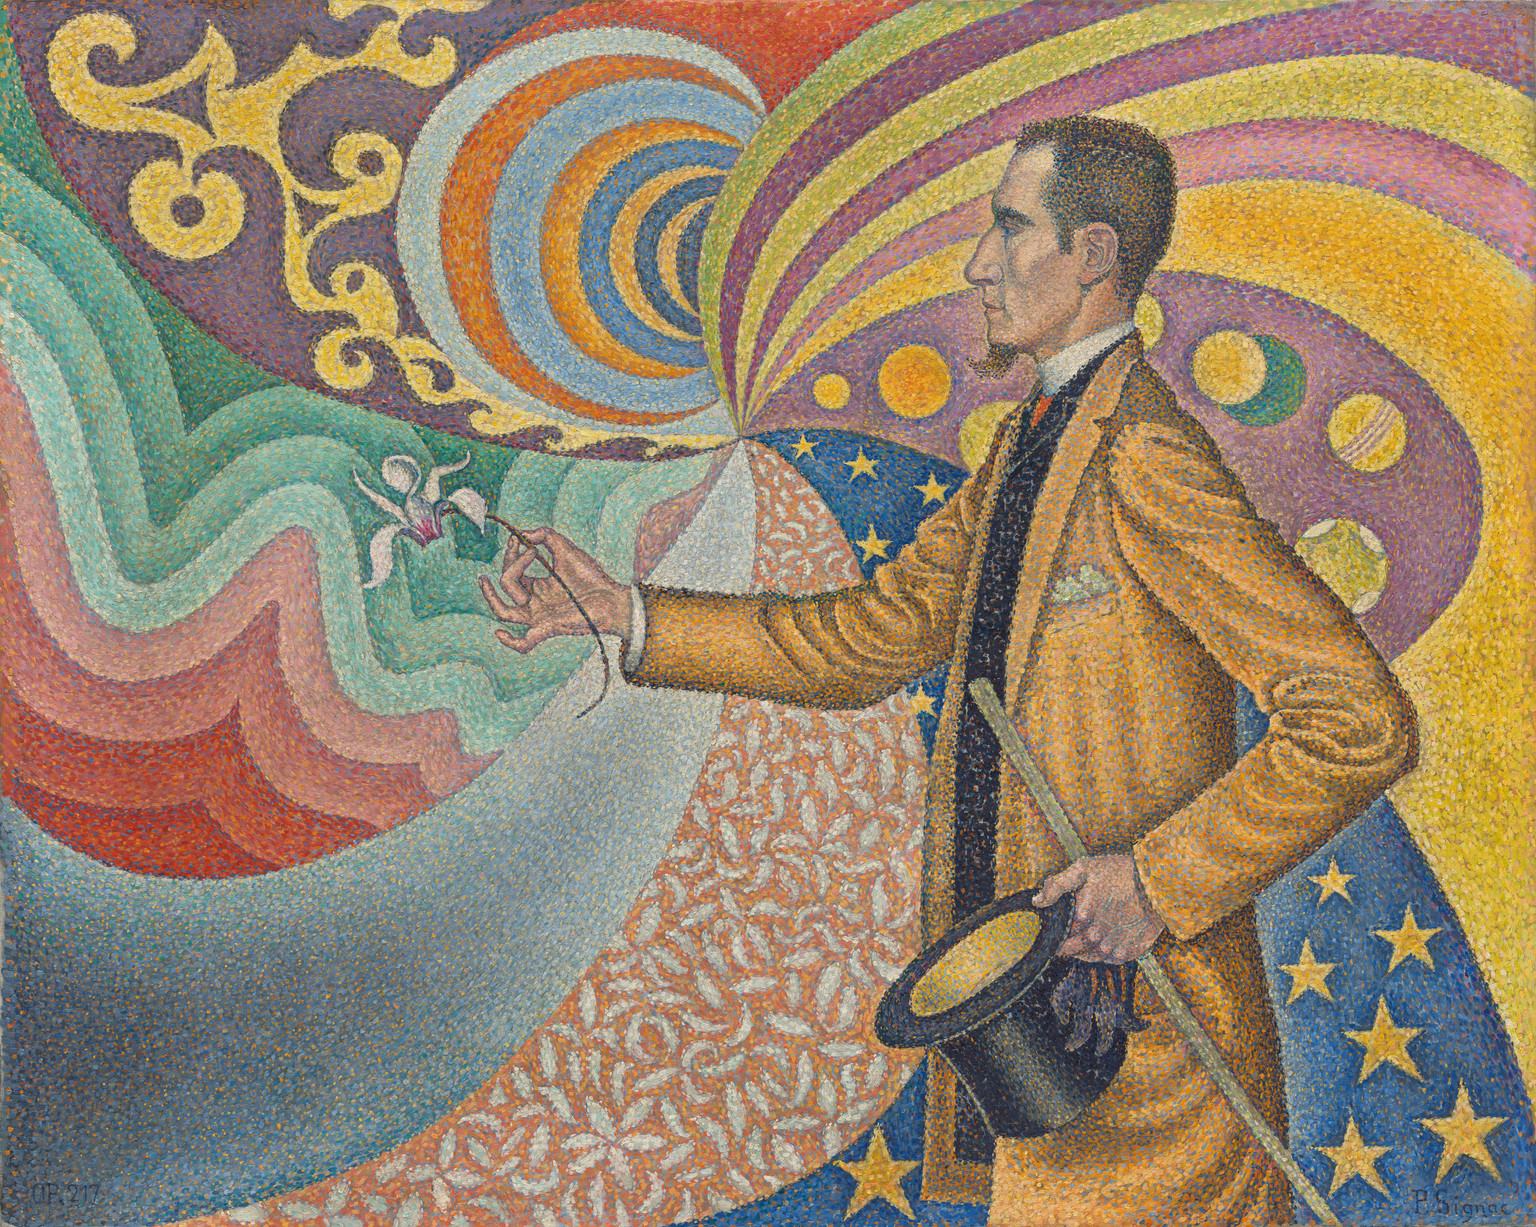 Paul Signac. Opus 217. Against the Enamel of a Background Rhythmic with Beats and Angles, Tones, and Tints, Portrait of M. Félix Fénéon in 1890. 1890. Oil on canvas. 29 x 36 1/2″ (73.5 x 92.5 cm). The Museum of Modern Art, New York. Gift of Mr. and Mrs. David Rockefeller, 1991. © 2020 Artists Rights Society (ARS), New York / ADAGP, Paris